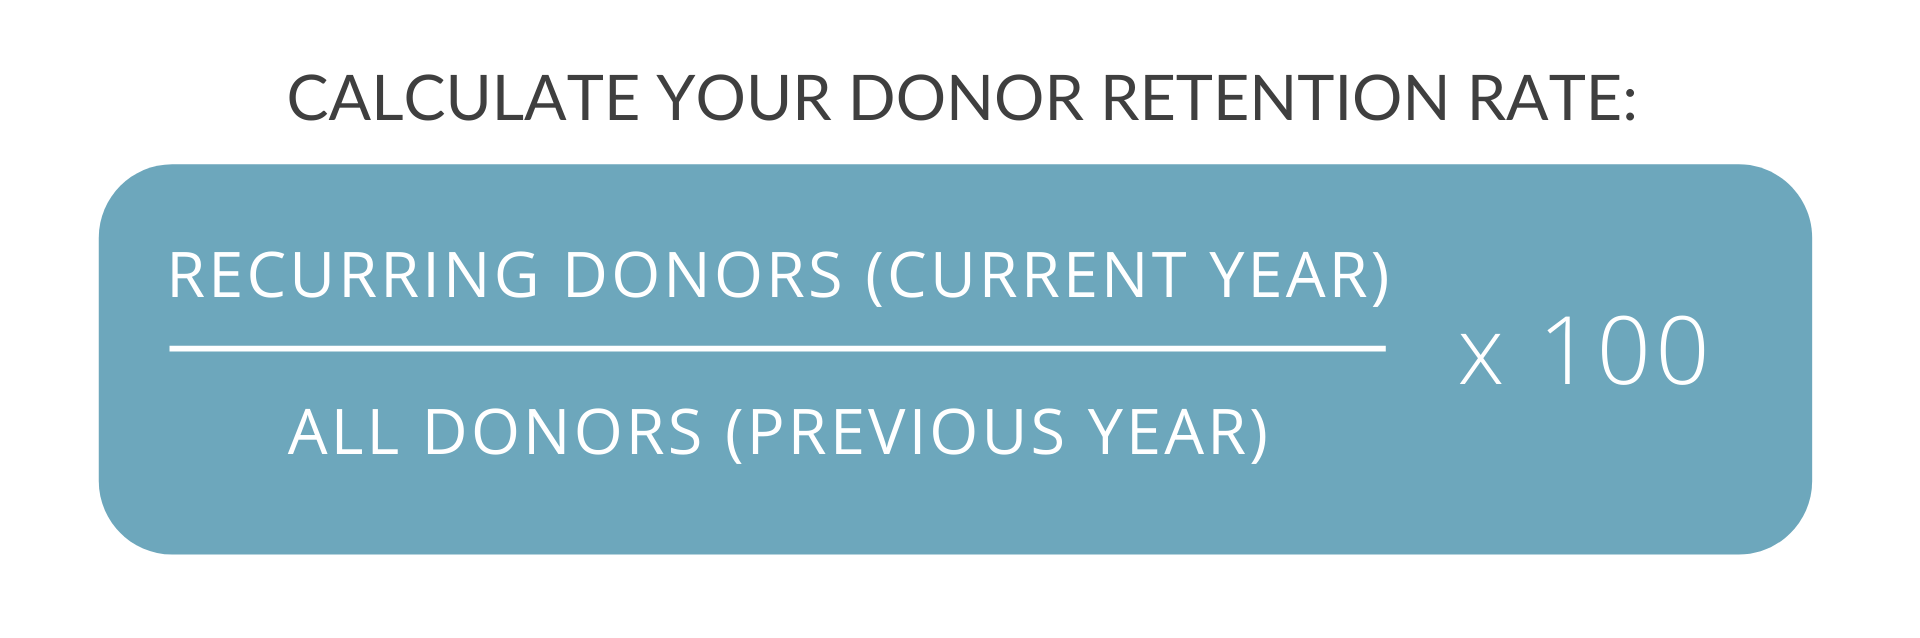 formula to calculate donor retention rate